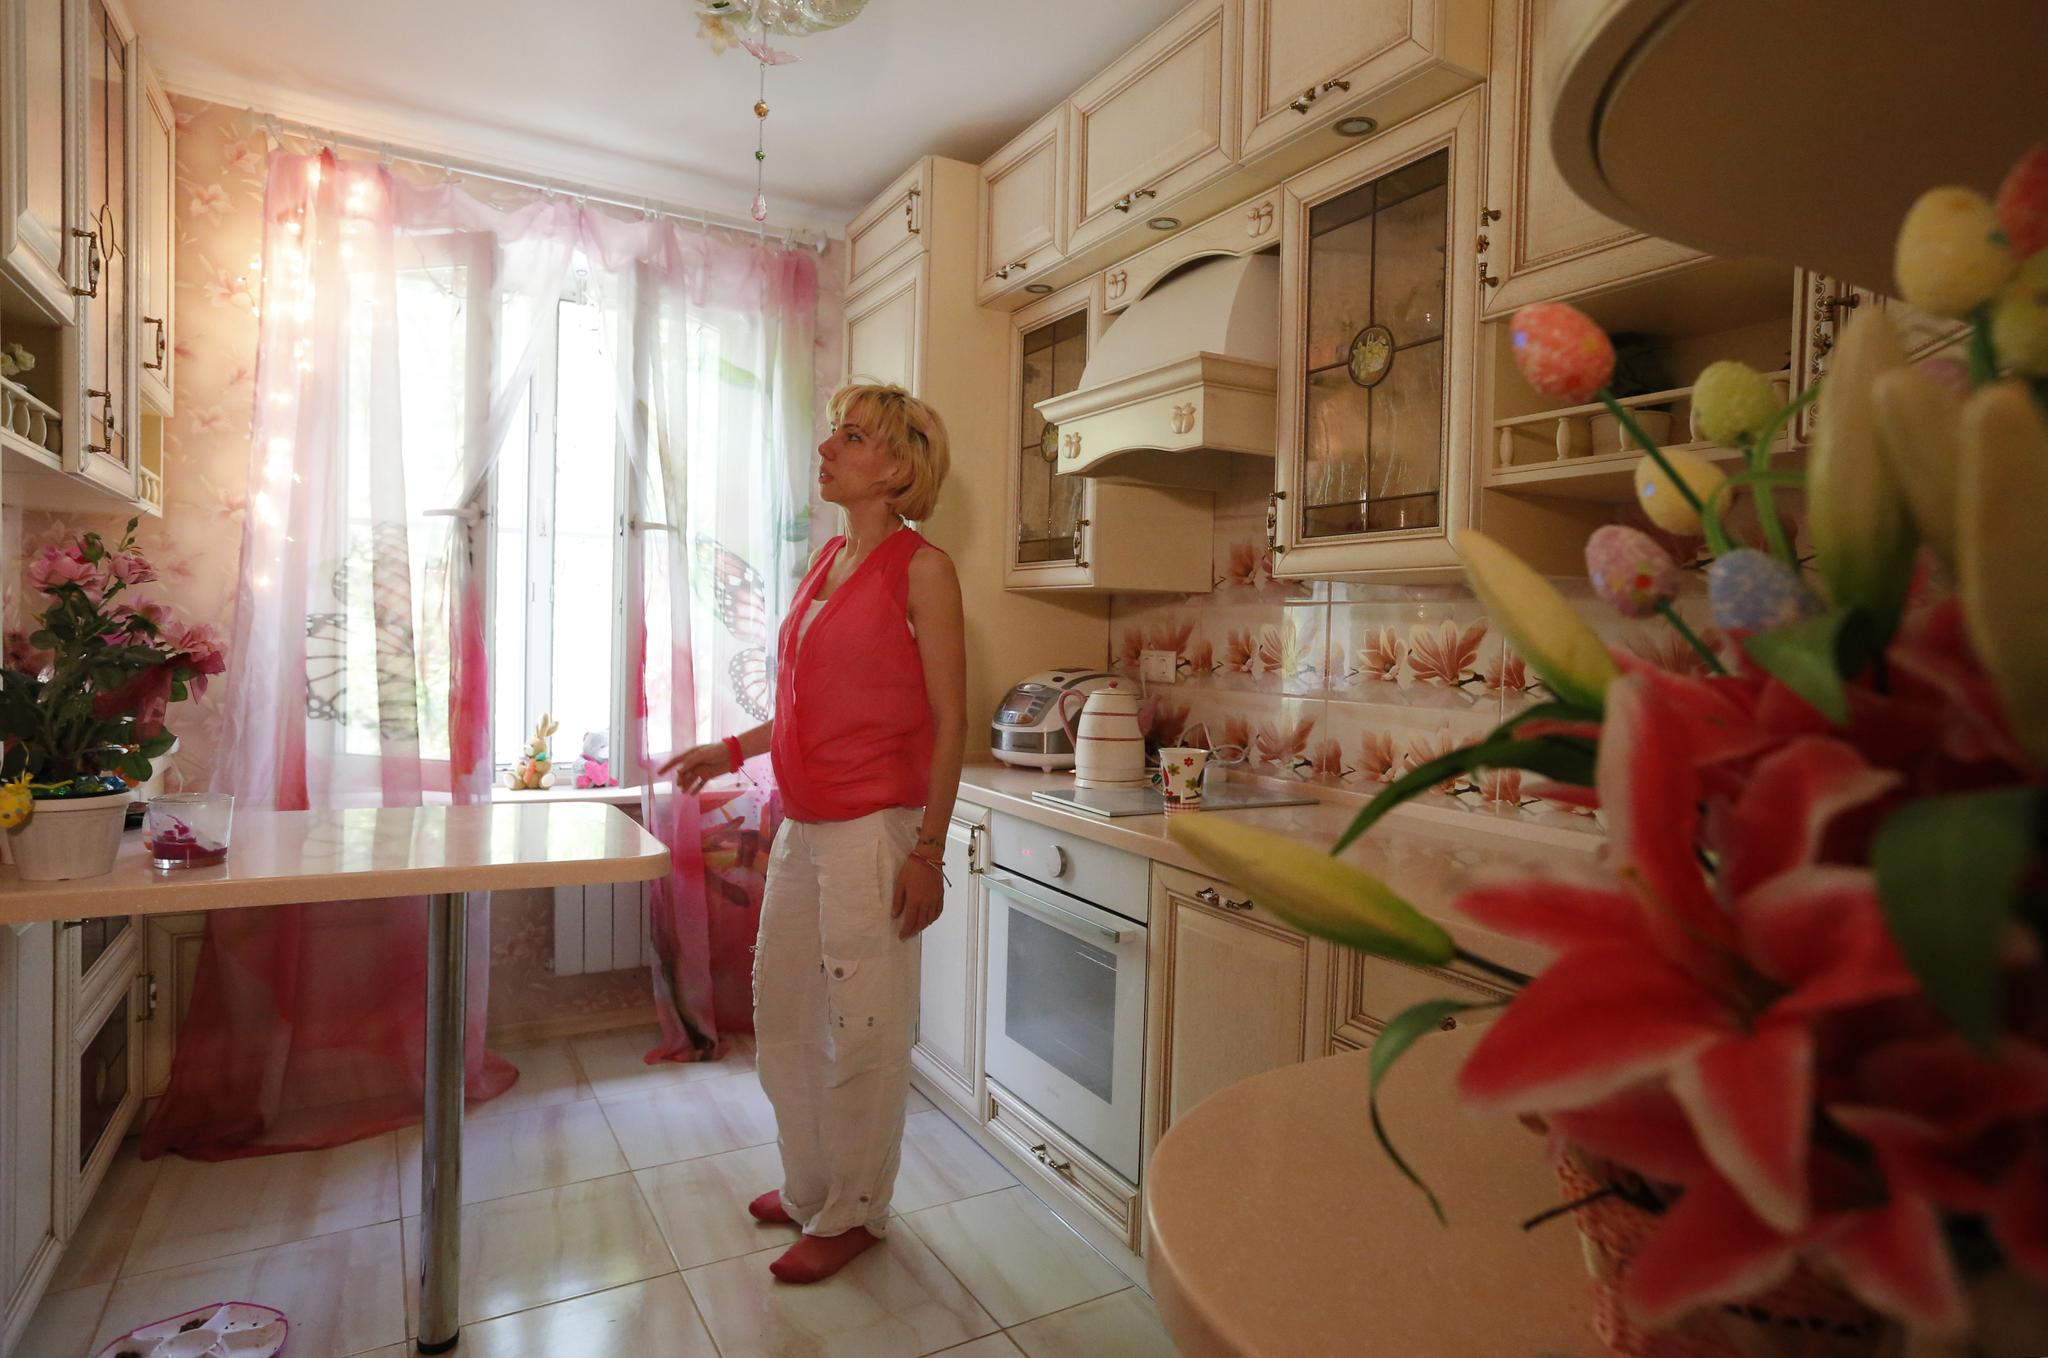 Anti-demolition activist Kari Guggenberger shows the kitchen of her apartment in a building to be demolished under the city authorities' renovation plan, in Moscow, Russia, on May 7, 2017.